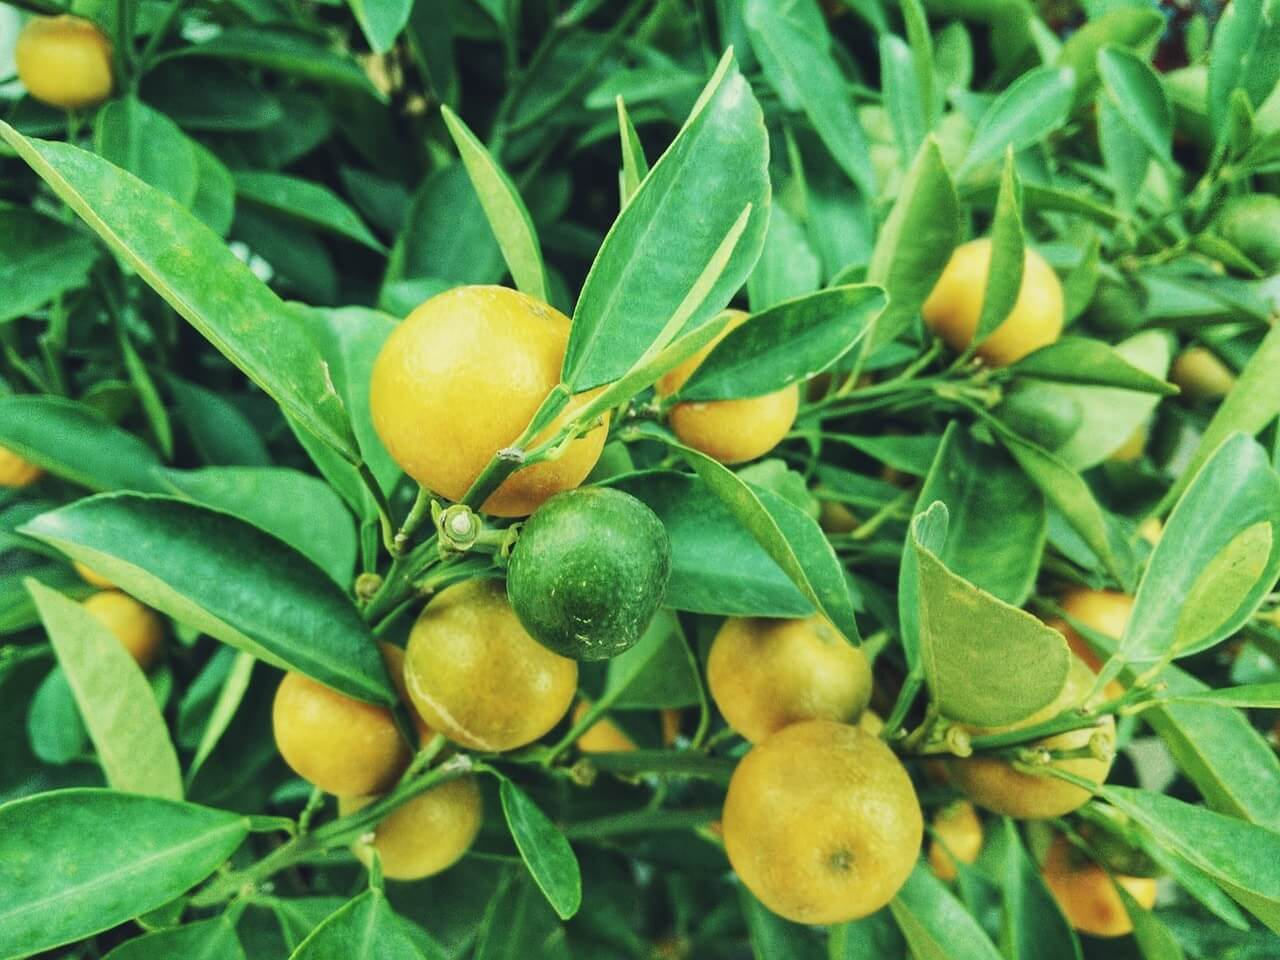 9 Reasons Why Lemons Are Good For You